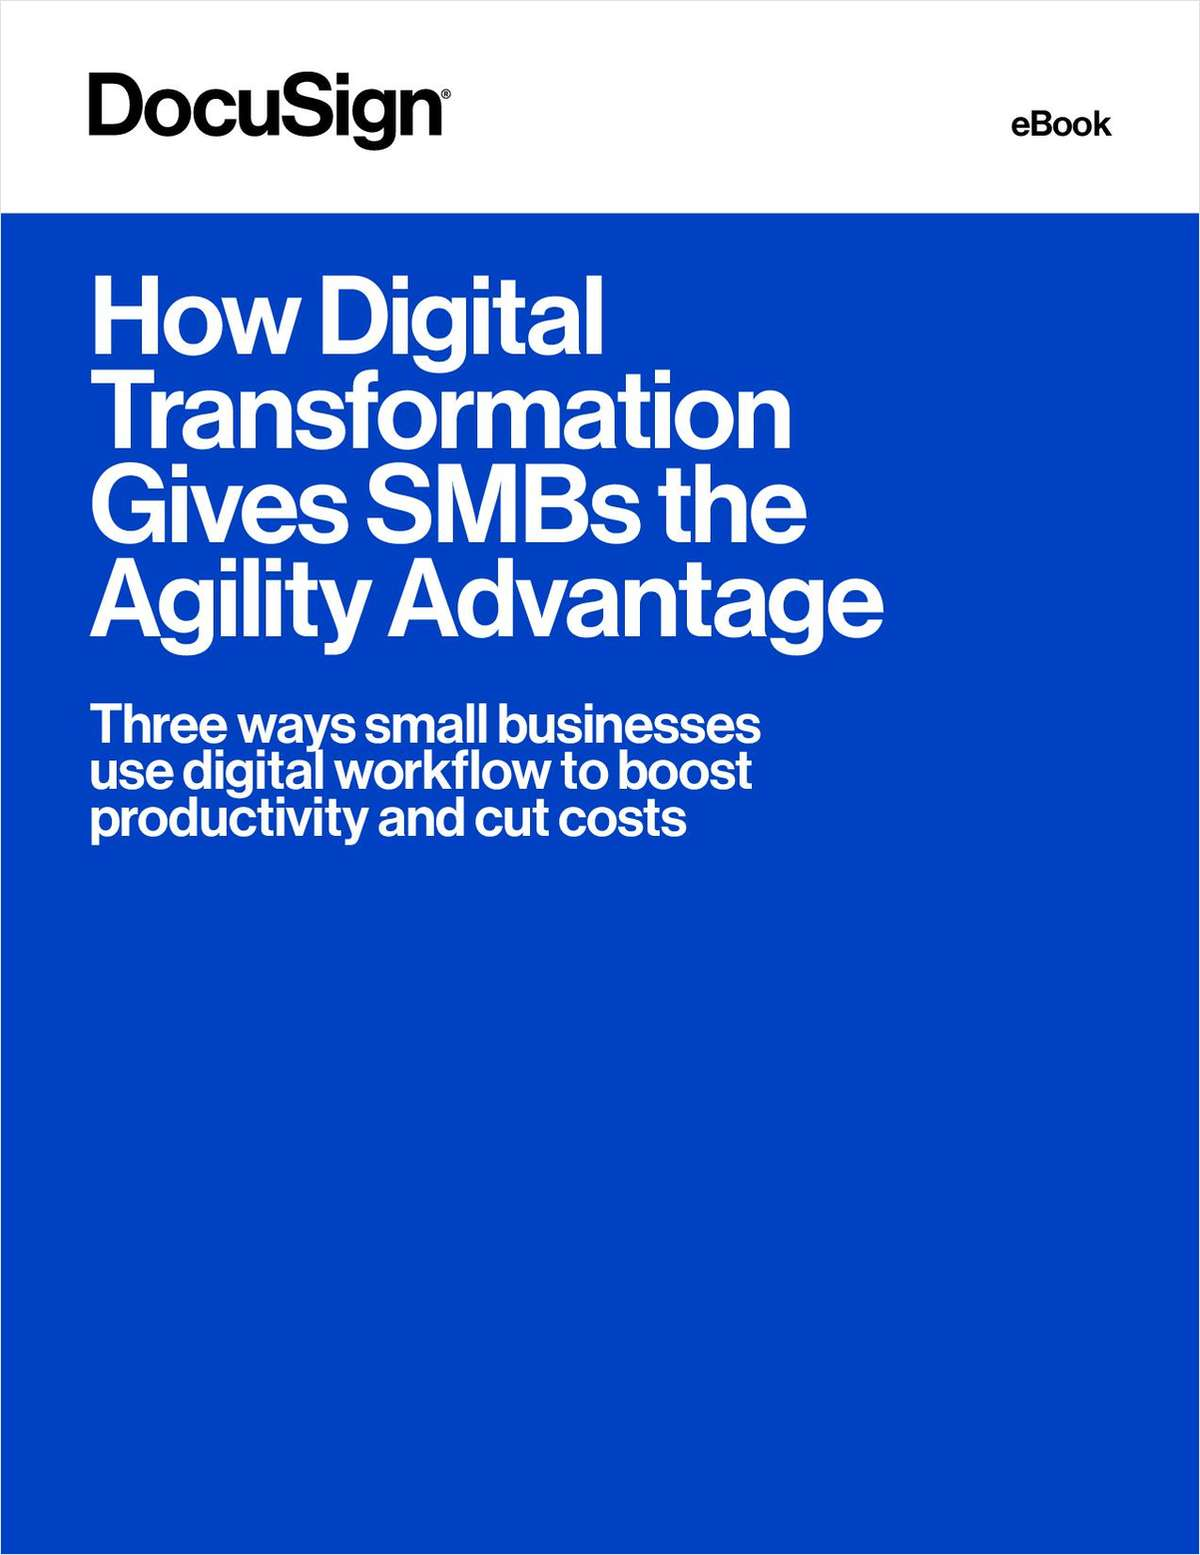 How Digital Transformation Gives SMBs the Agility Advantage